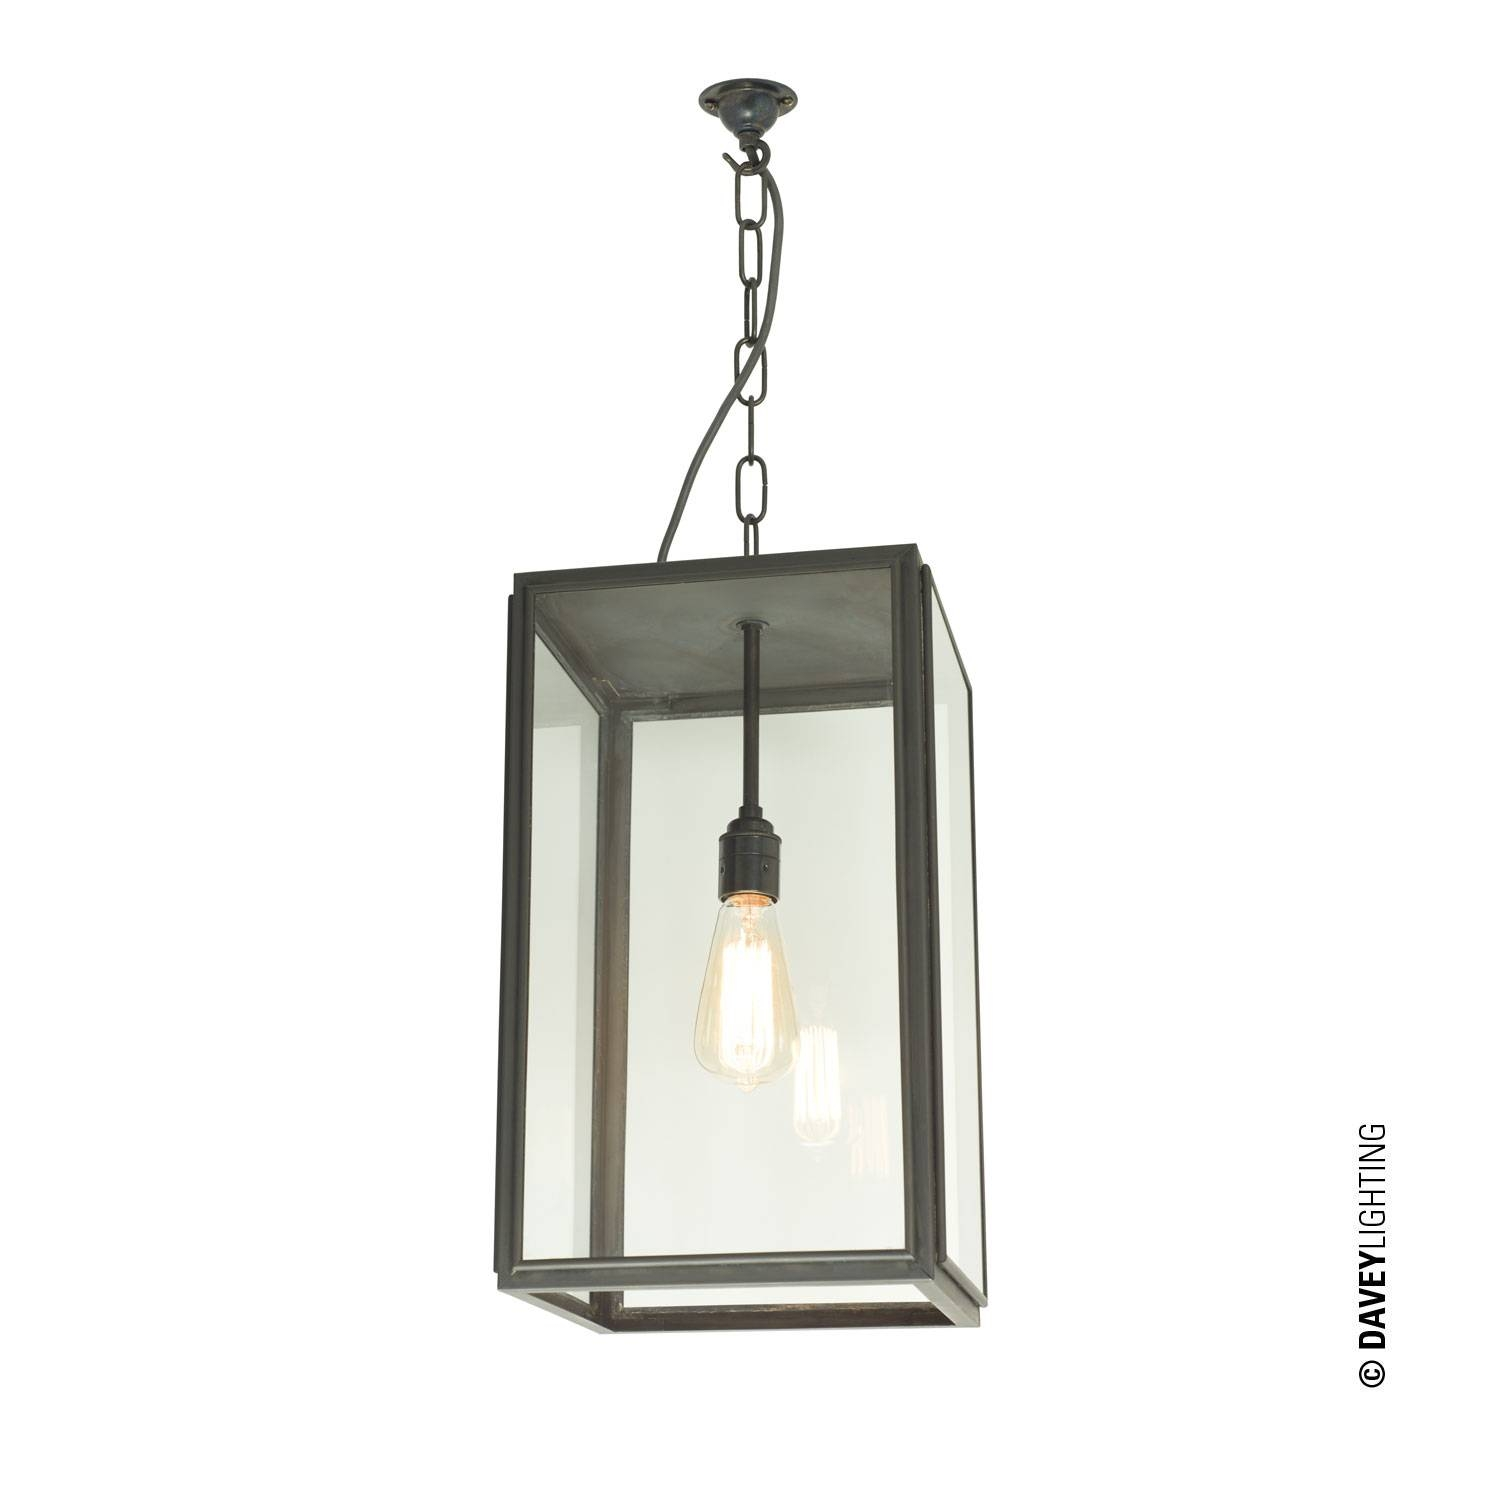 Lighting Quad Square Pendant Light External Glass Closed Top intended for Square Pendant Light Fixtures (Image 11 of 15)